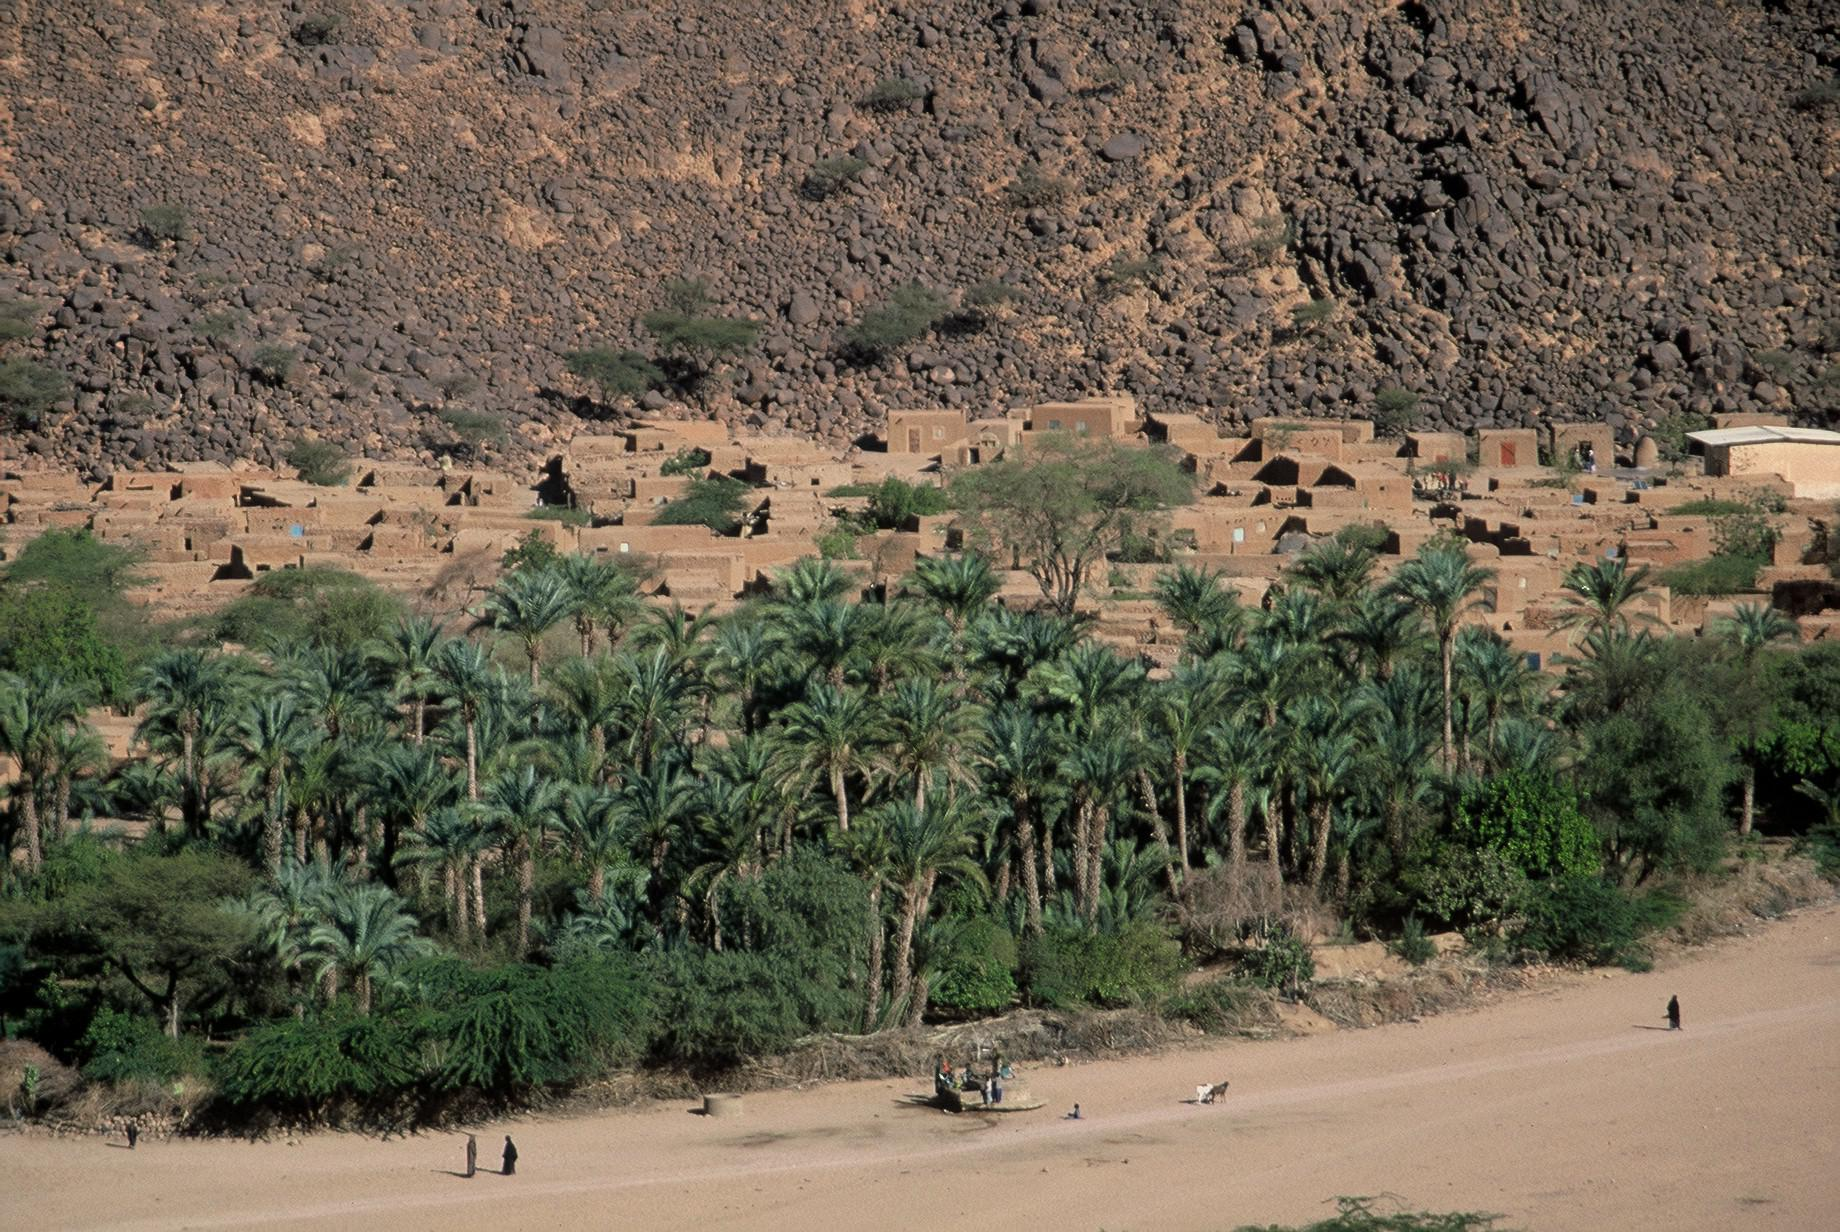 Timia, Aïr Mountains, Niger © Michiel Kupers